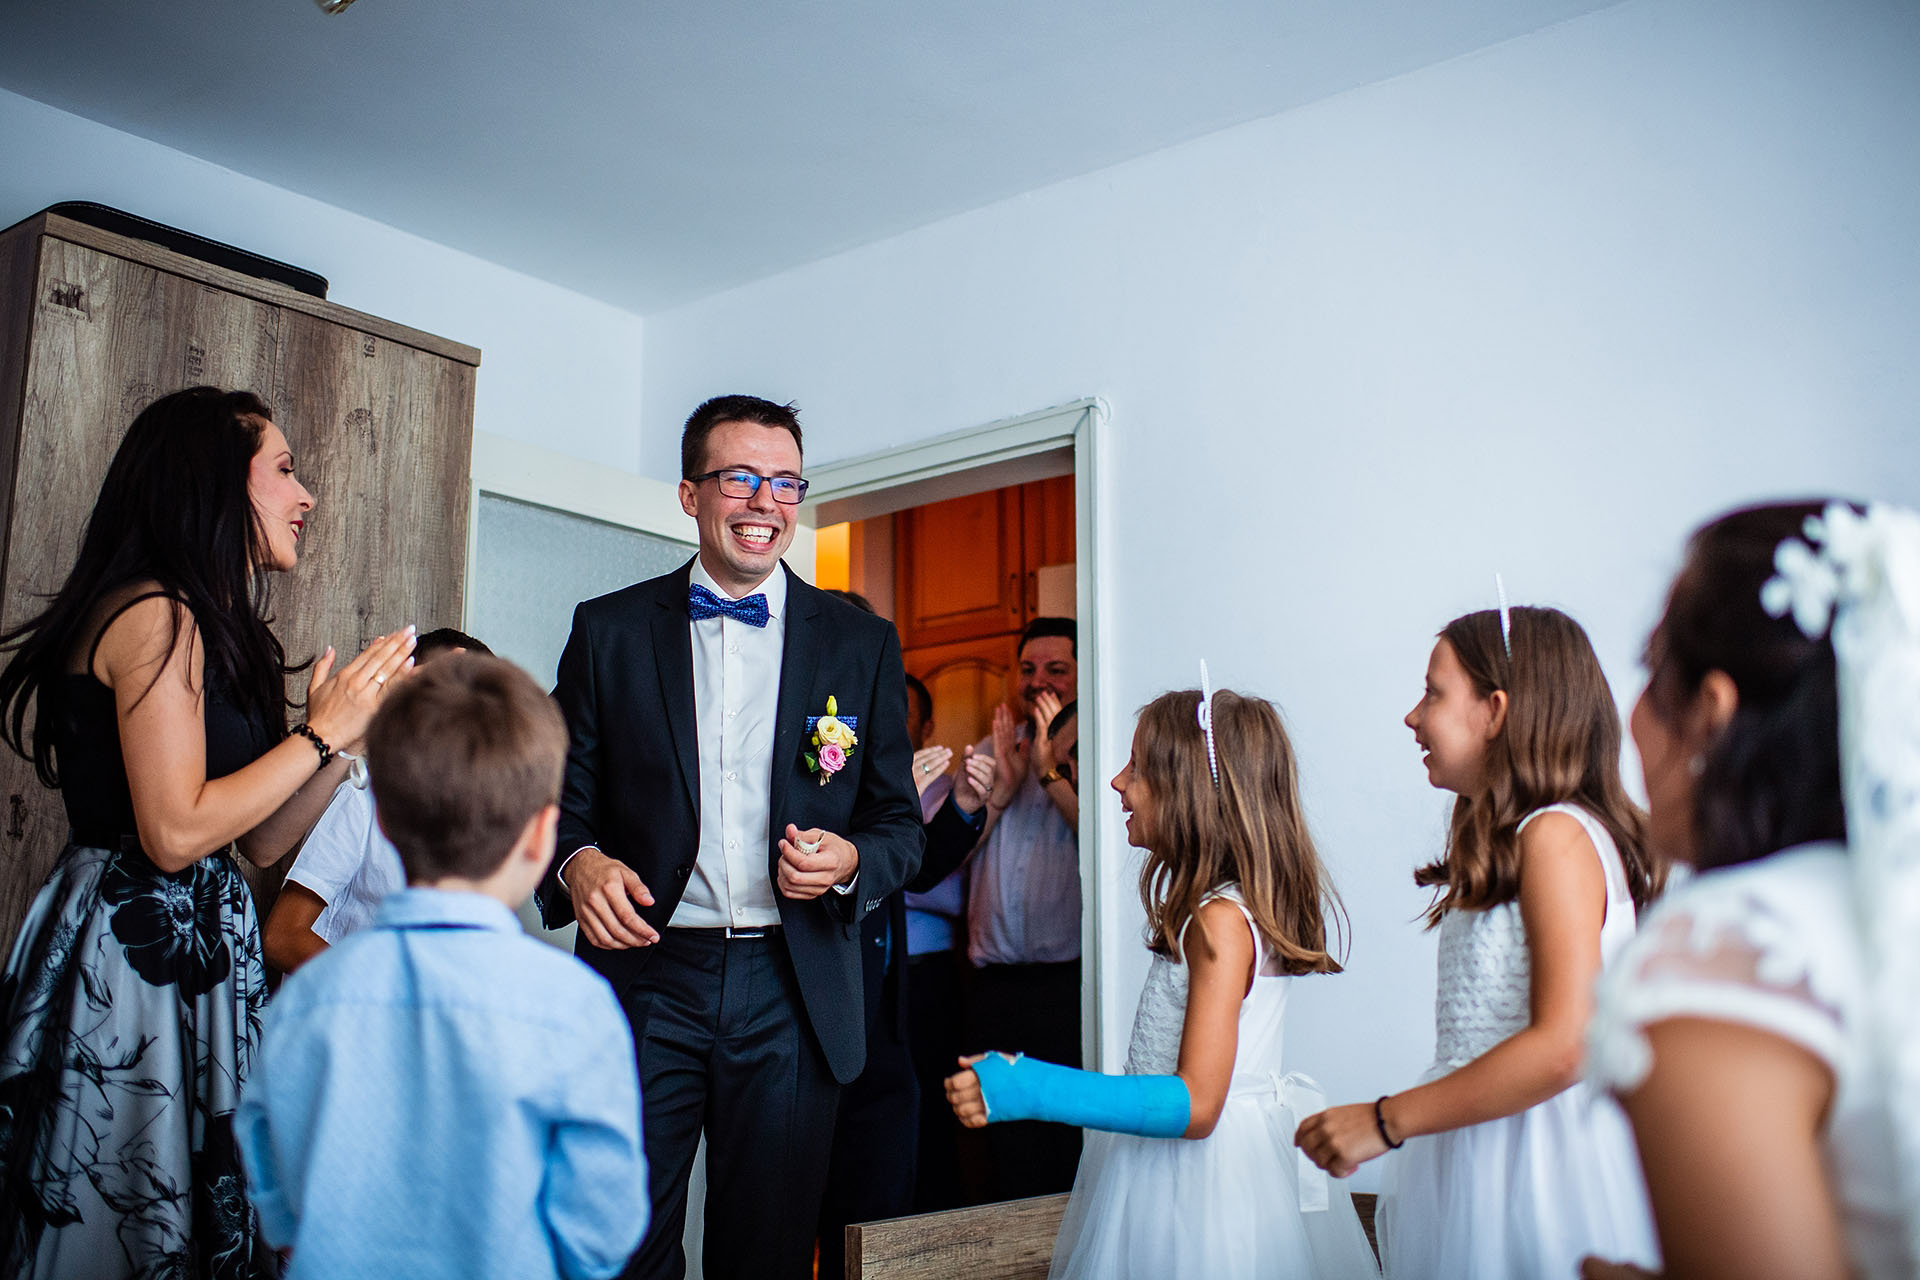 Bulgaria Elopement Pre-Ceremony Photography | the groom is allowed into the room and can't hide how excited he is to see his beautiful bride